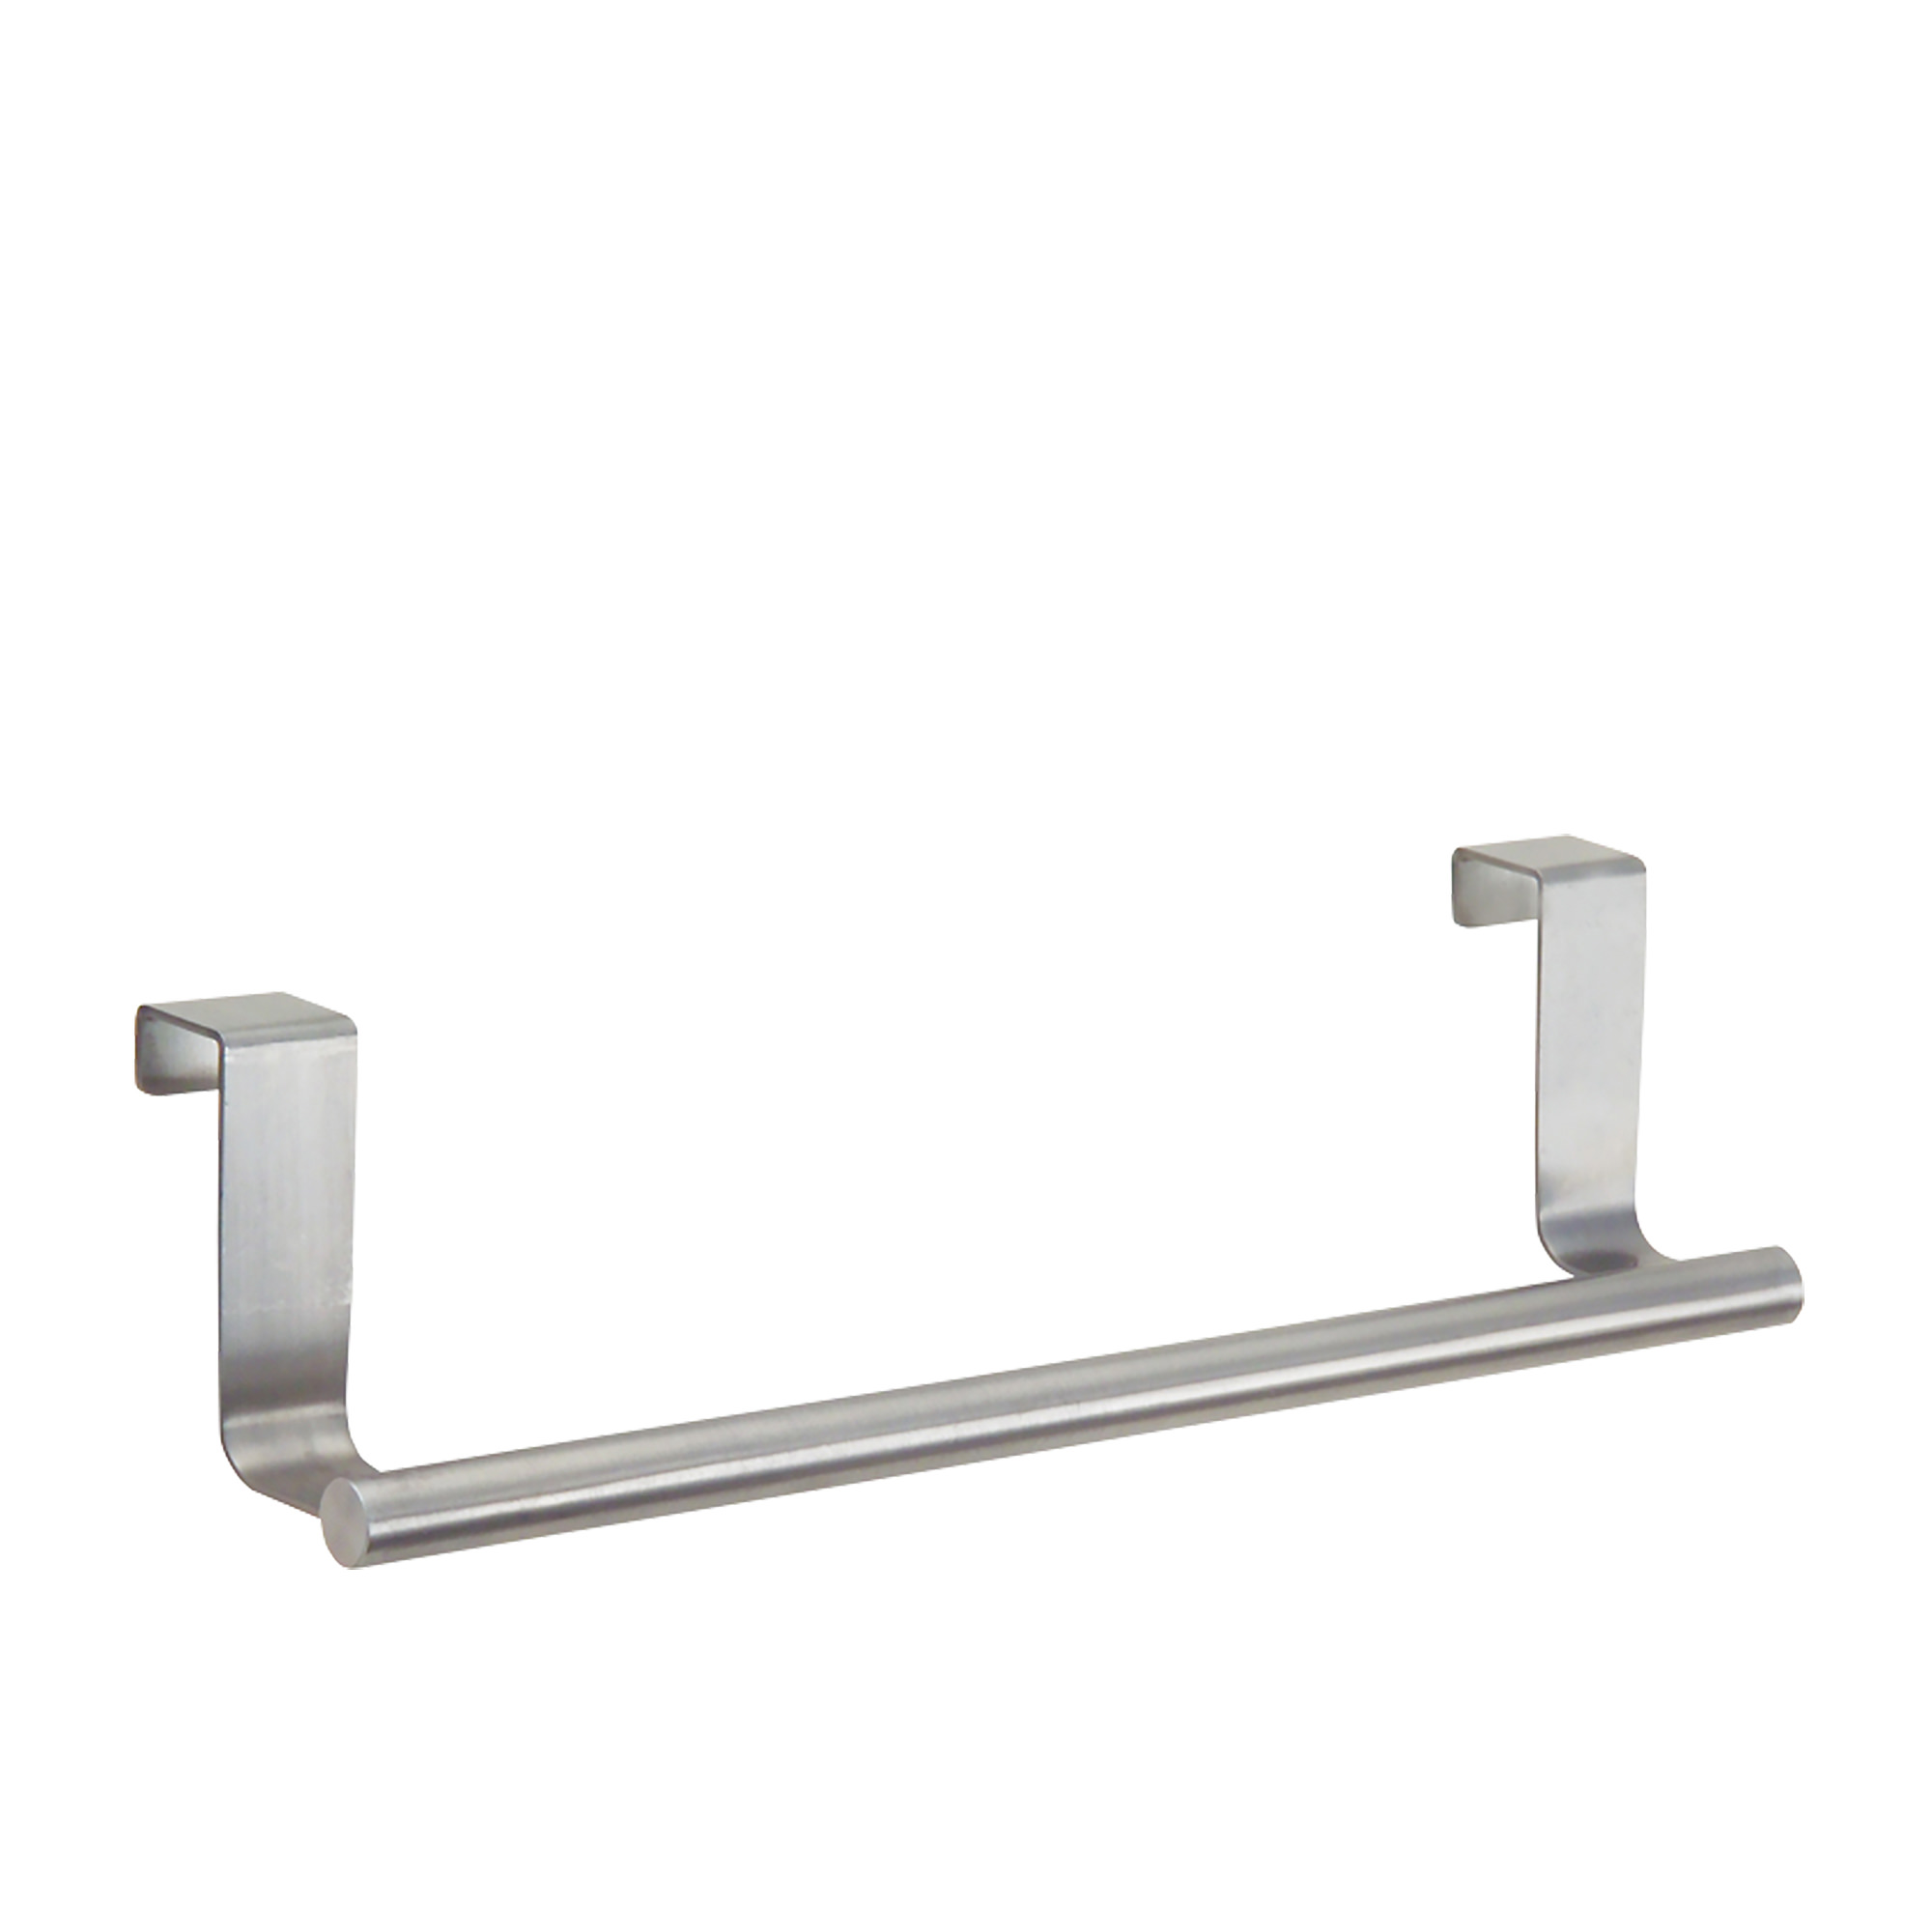 Interdesign Forma Over The Cabinet Towel Bar 36.2x5.7x7cm Steel